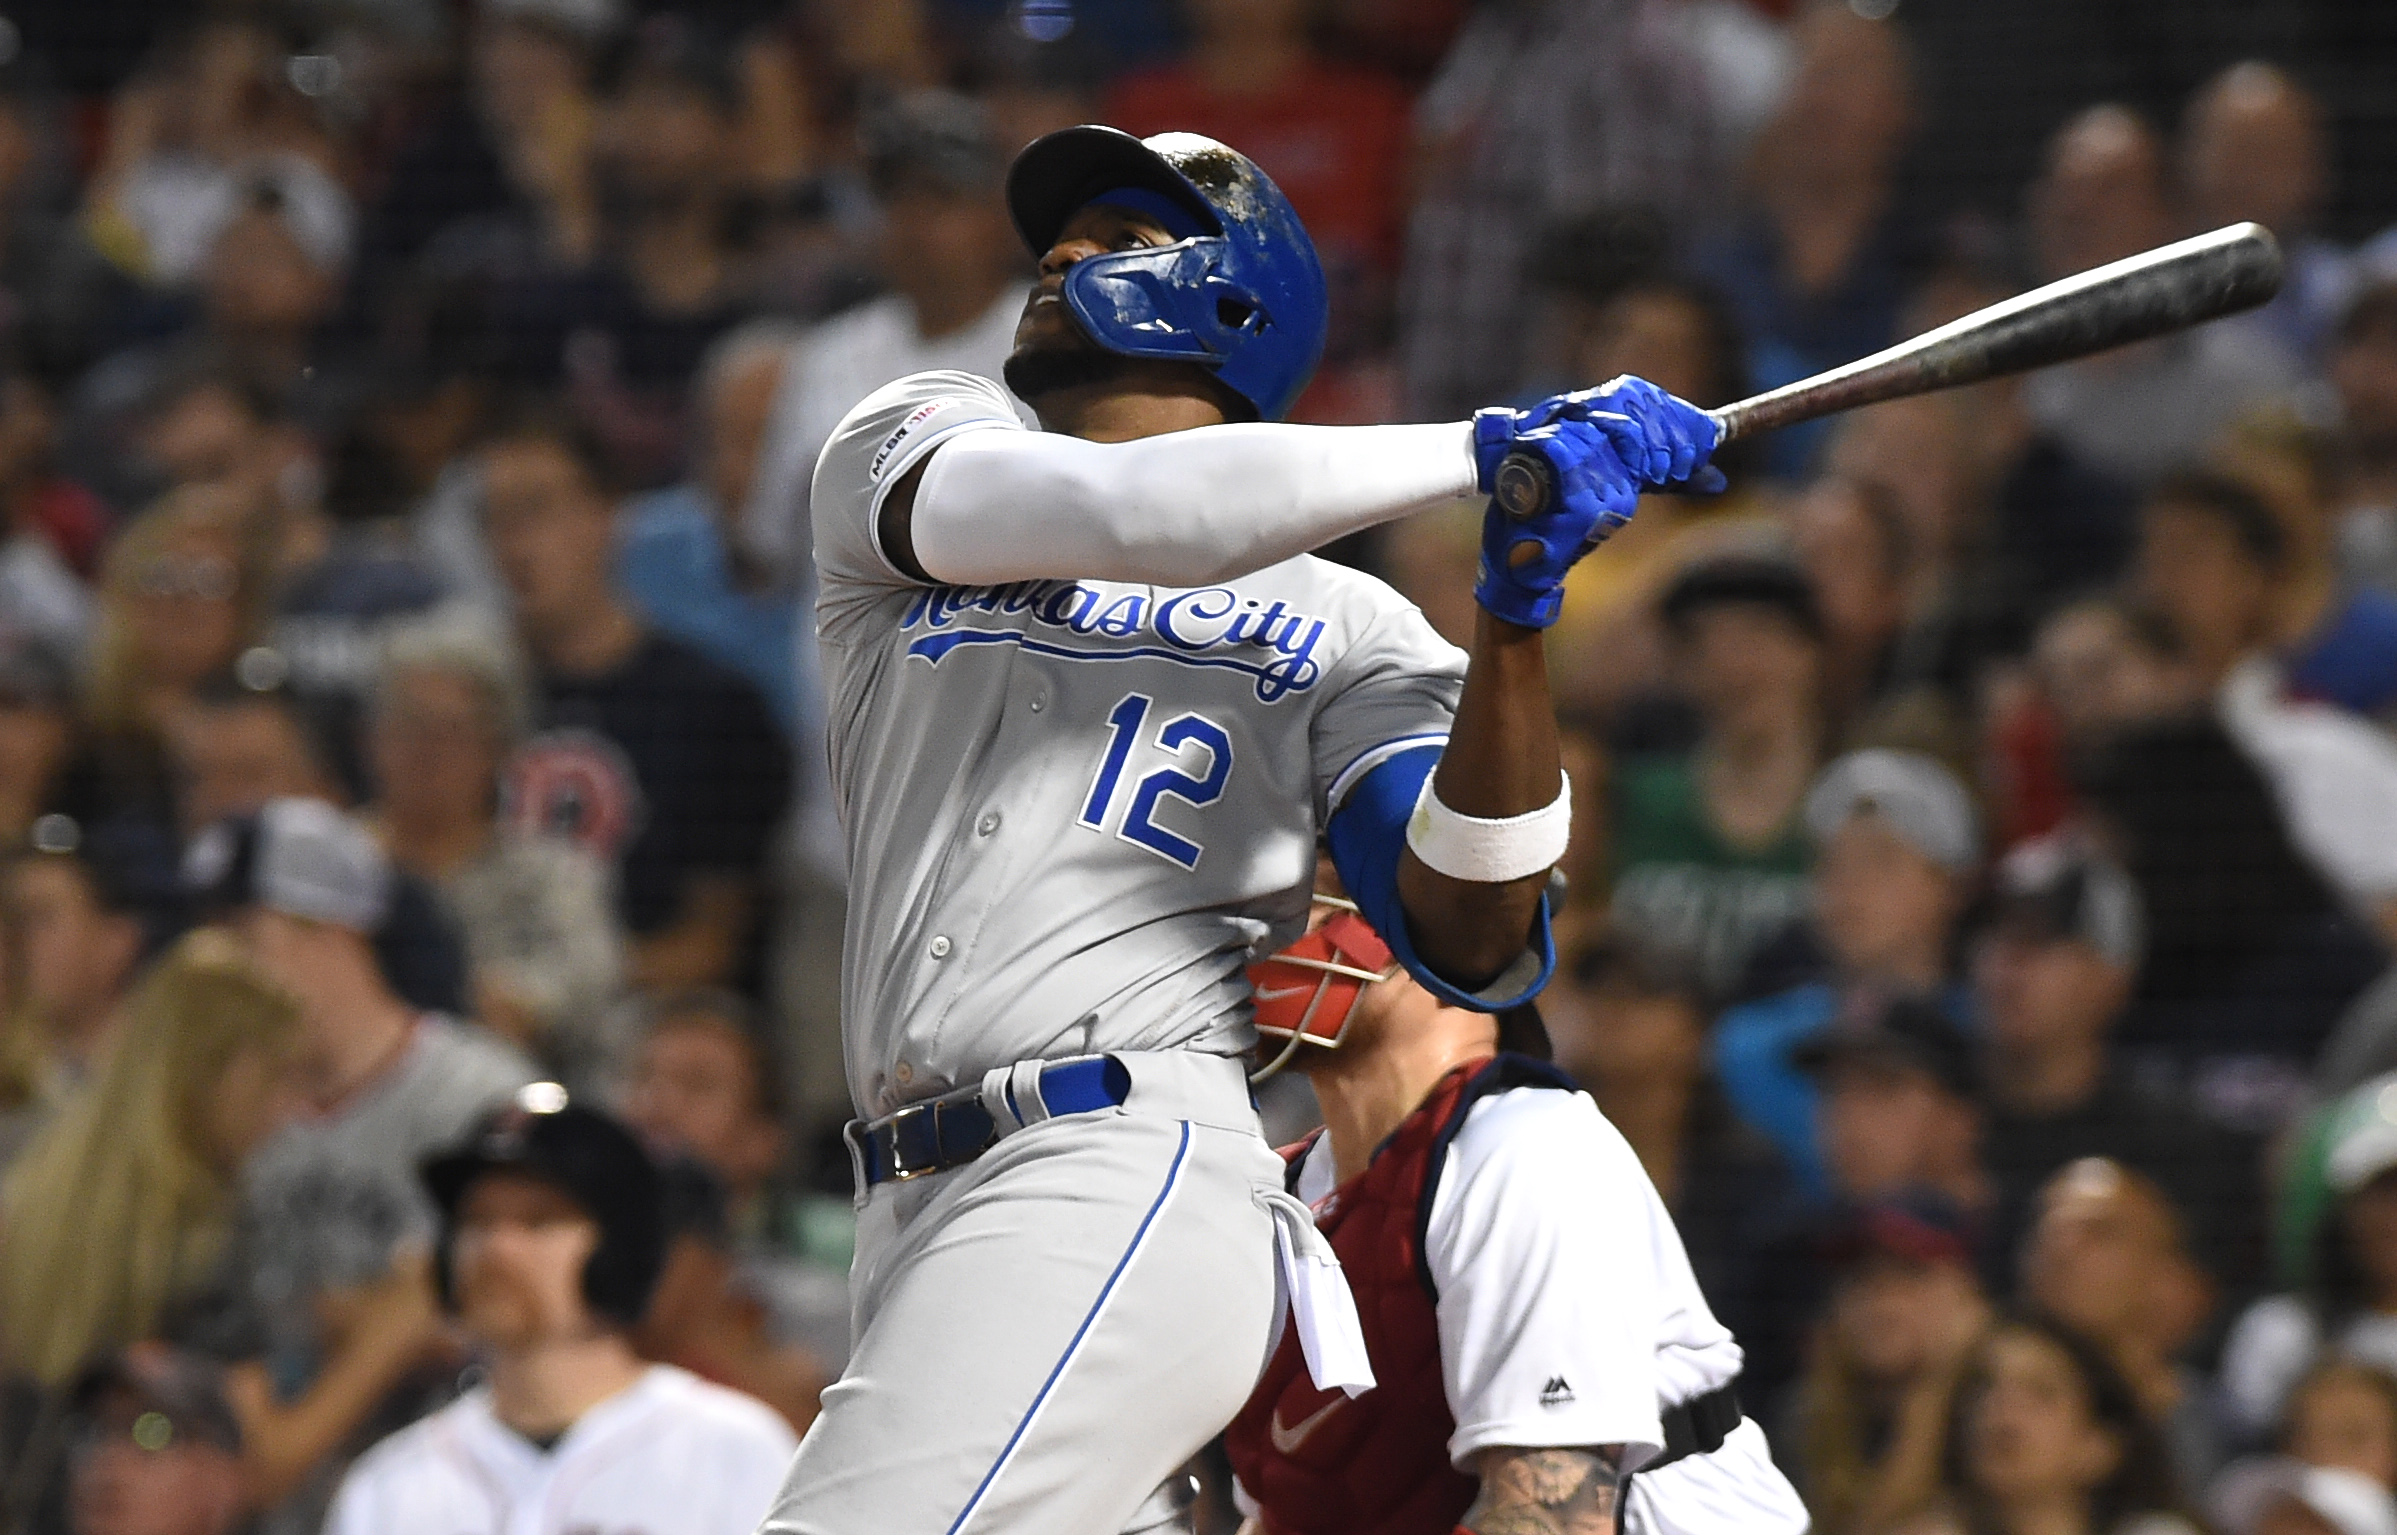 Kansas City Royals designated hitter Jorge Soler (12) hits a home run during the sixth inning against the Boston Red Sox at Fenway Park.